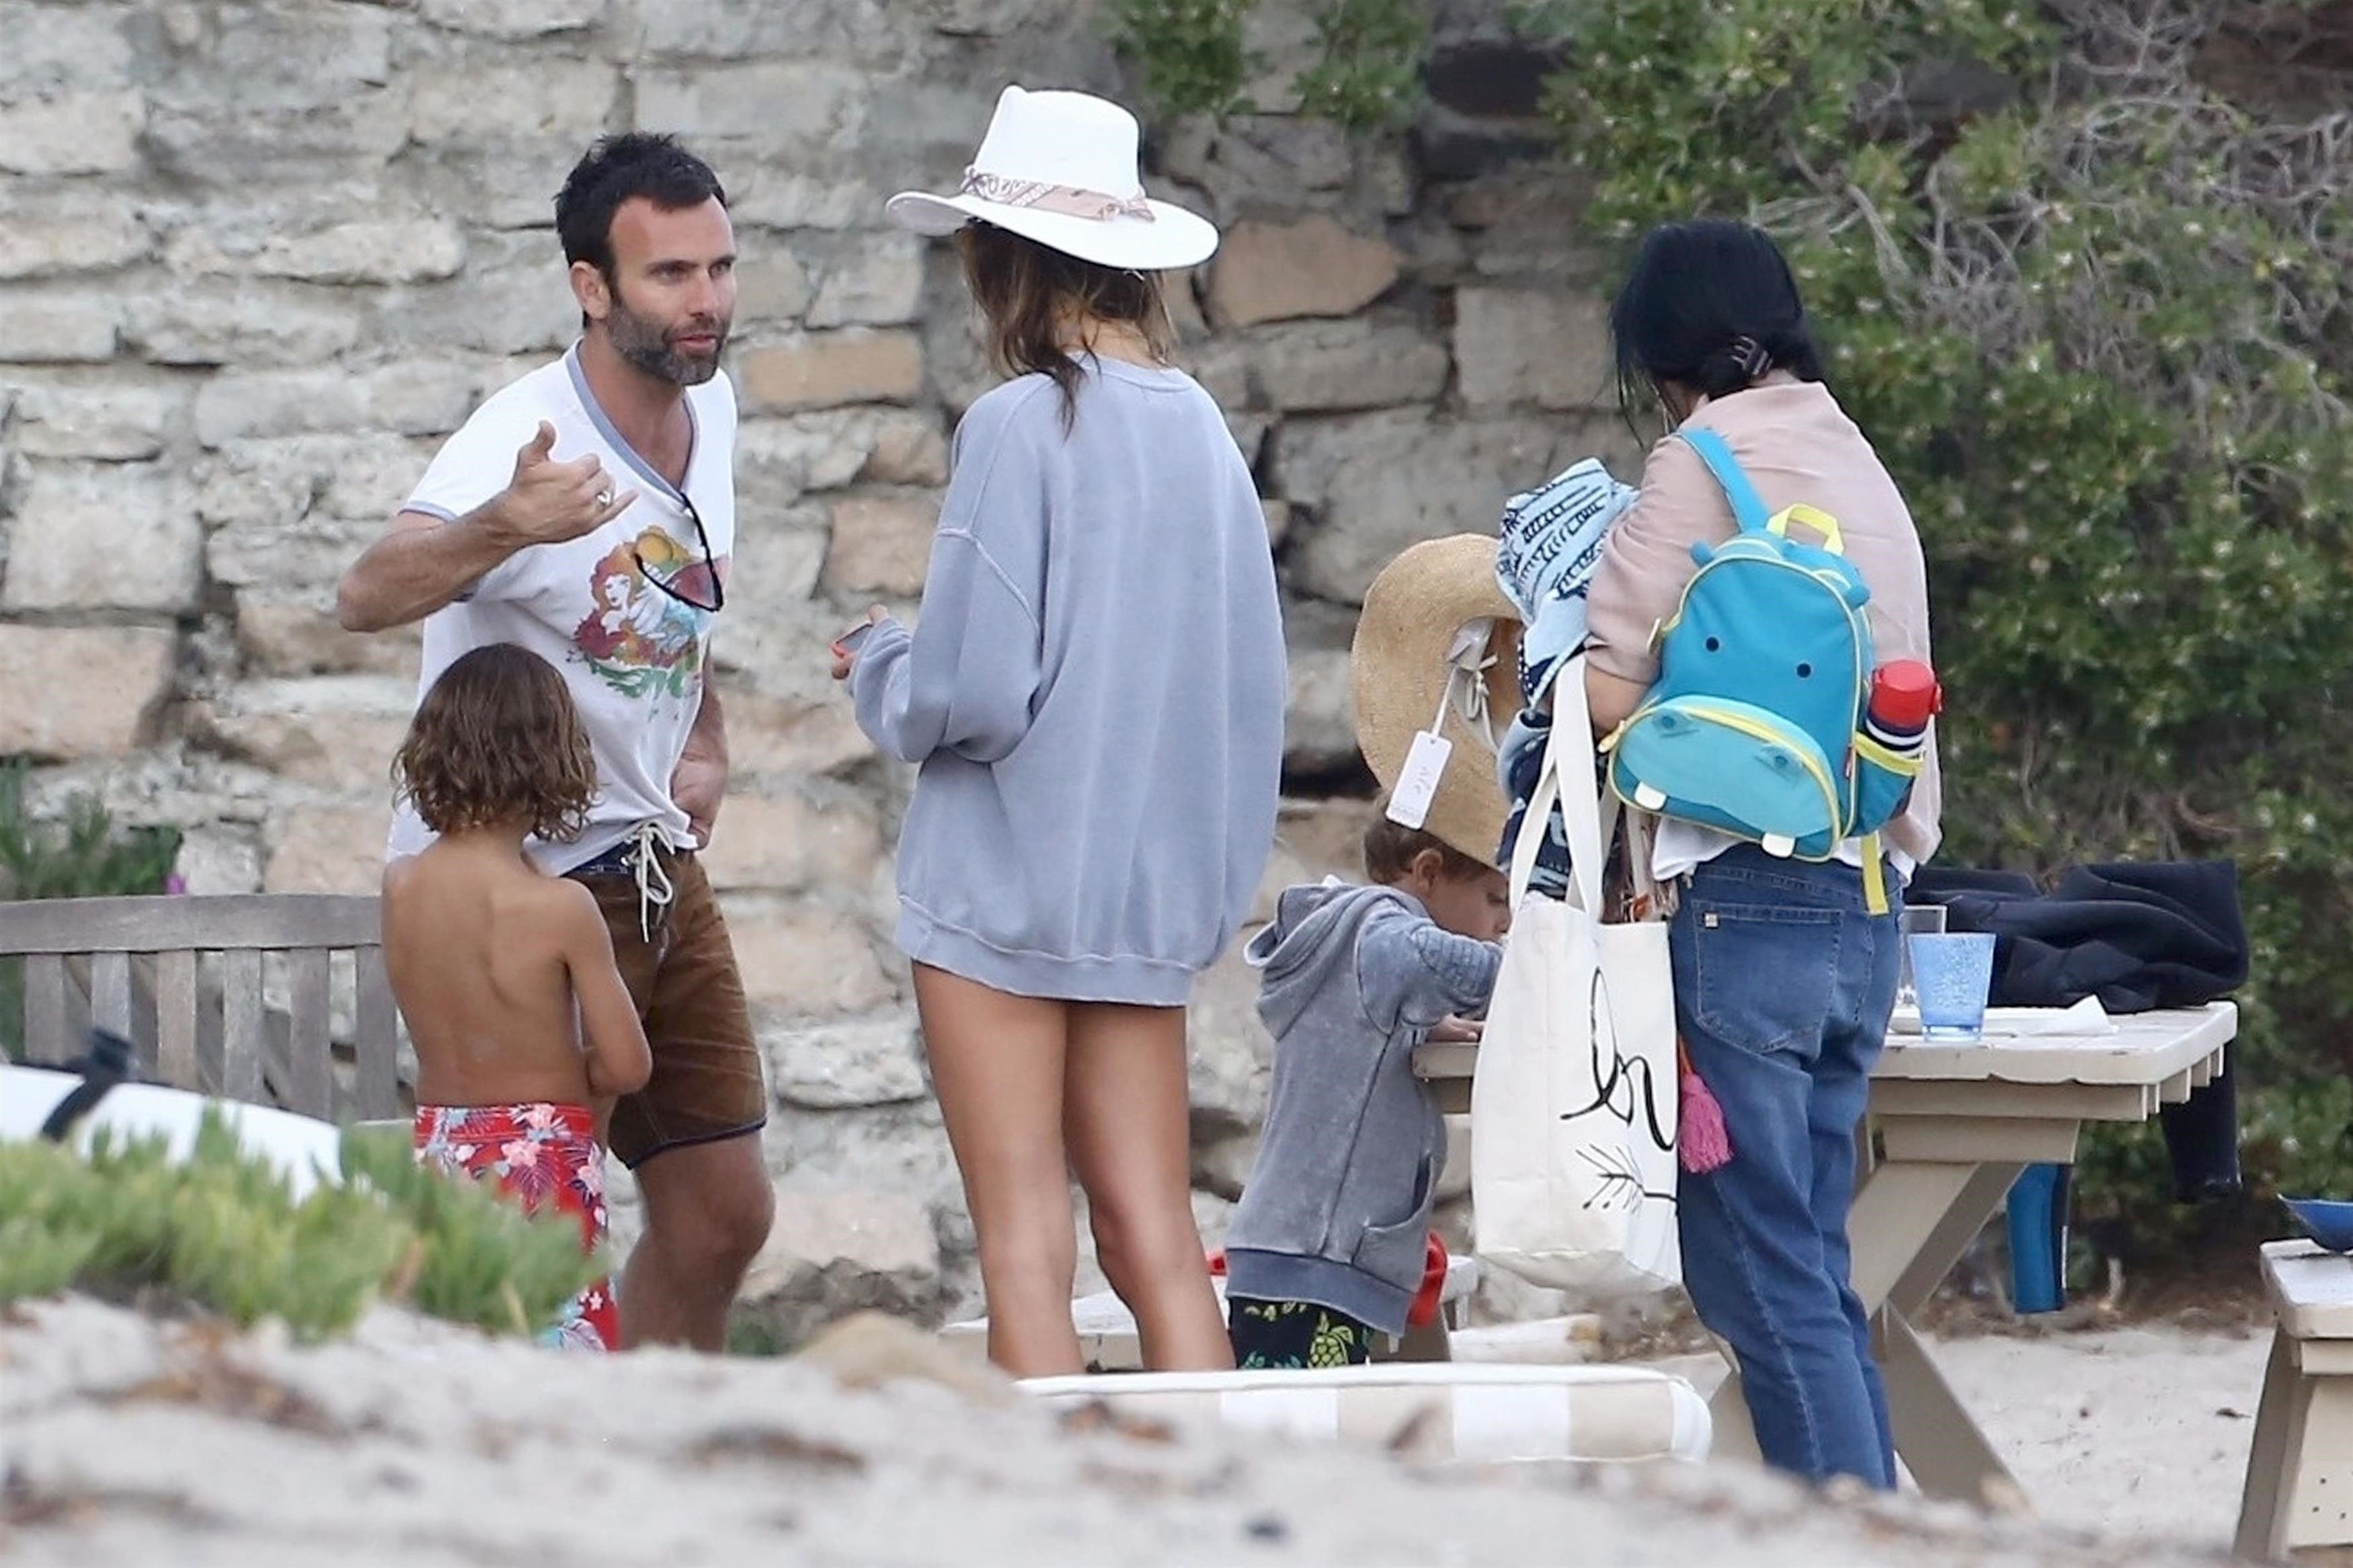 Malibu, CA  - *EXCLUSIVE*  - Supermodel Alessandra Ambrosio and her ex-fiance Jamie Mazur were spotted enjoying a family day on the beach with their kids in Malibu.  Pictured: Alessandra Ambrosio, Jamie Mazur    *UK Clients - Pictures Containing Children Please Pixelate Face Prior To Publication*, Image: 370796257, License: Rights-managed, Restrictions: , Model Release: no, Credit line: Profimedia, AKM-GSI